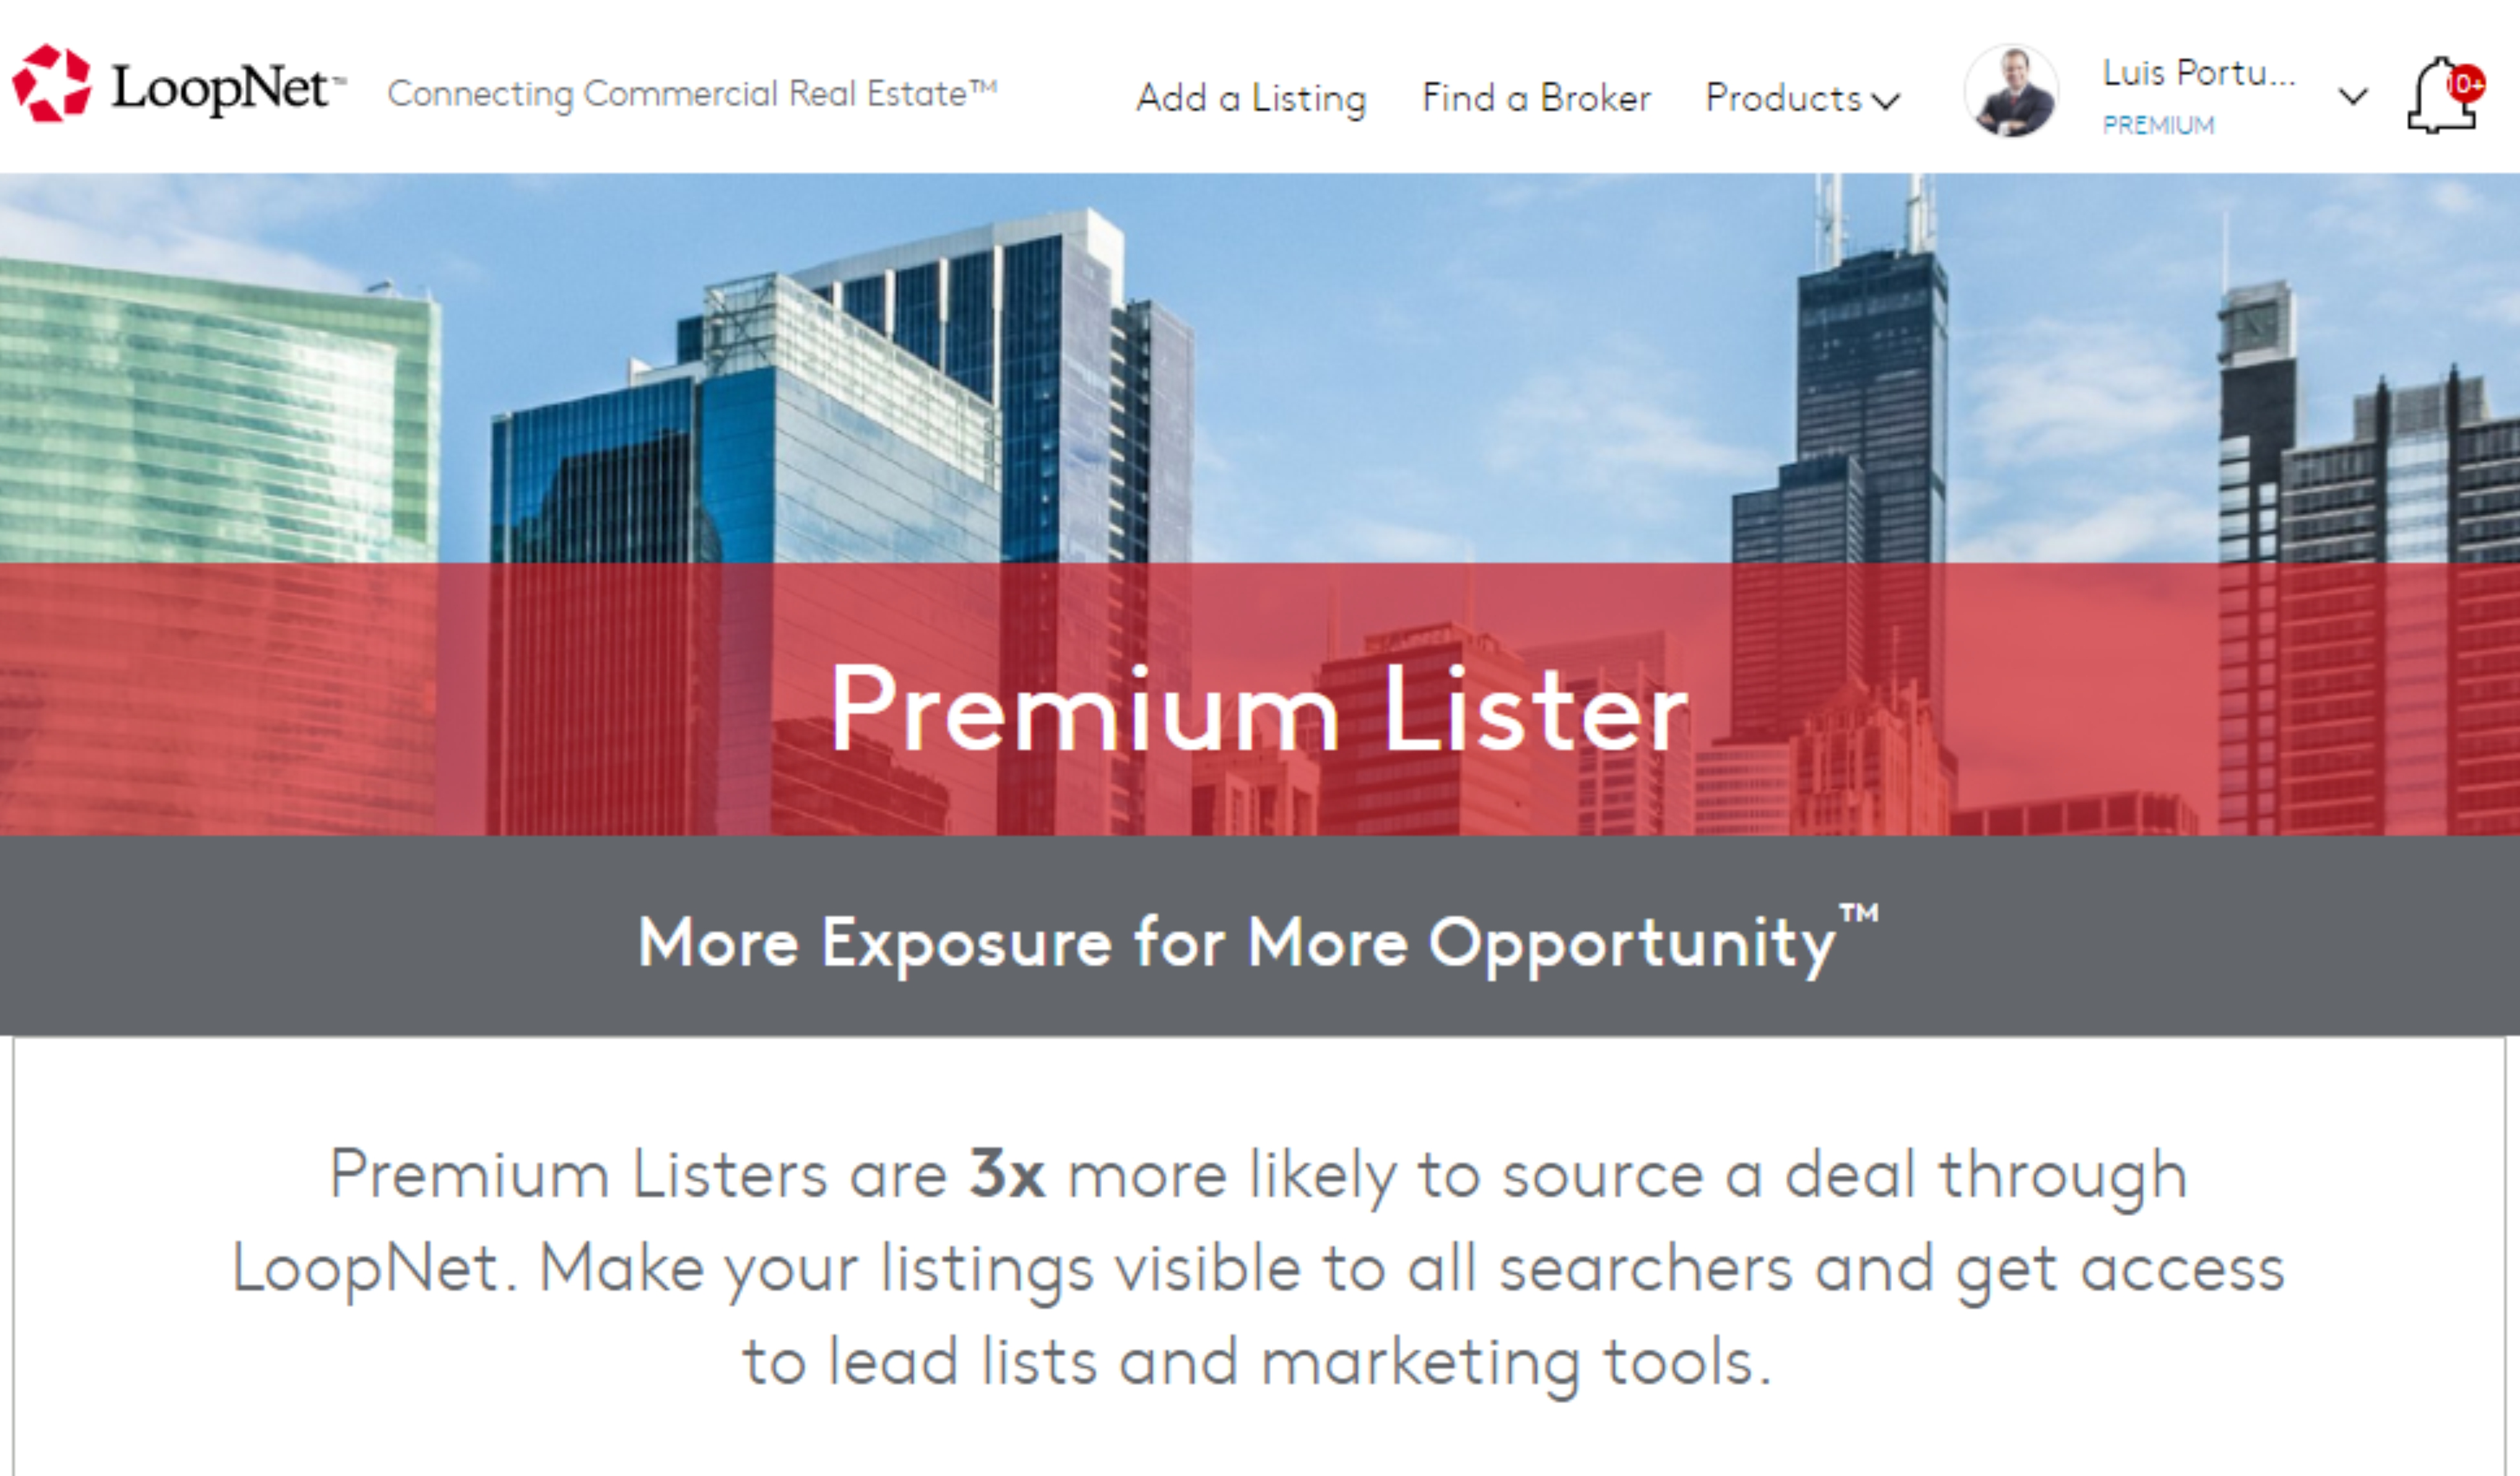 Loopnet Premium Member - I'm Your Commercial Real Estate Partner